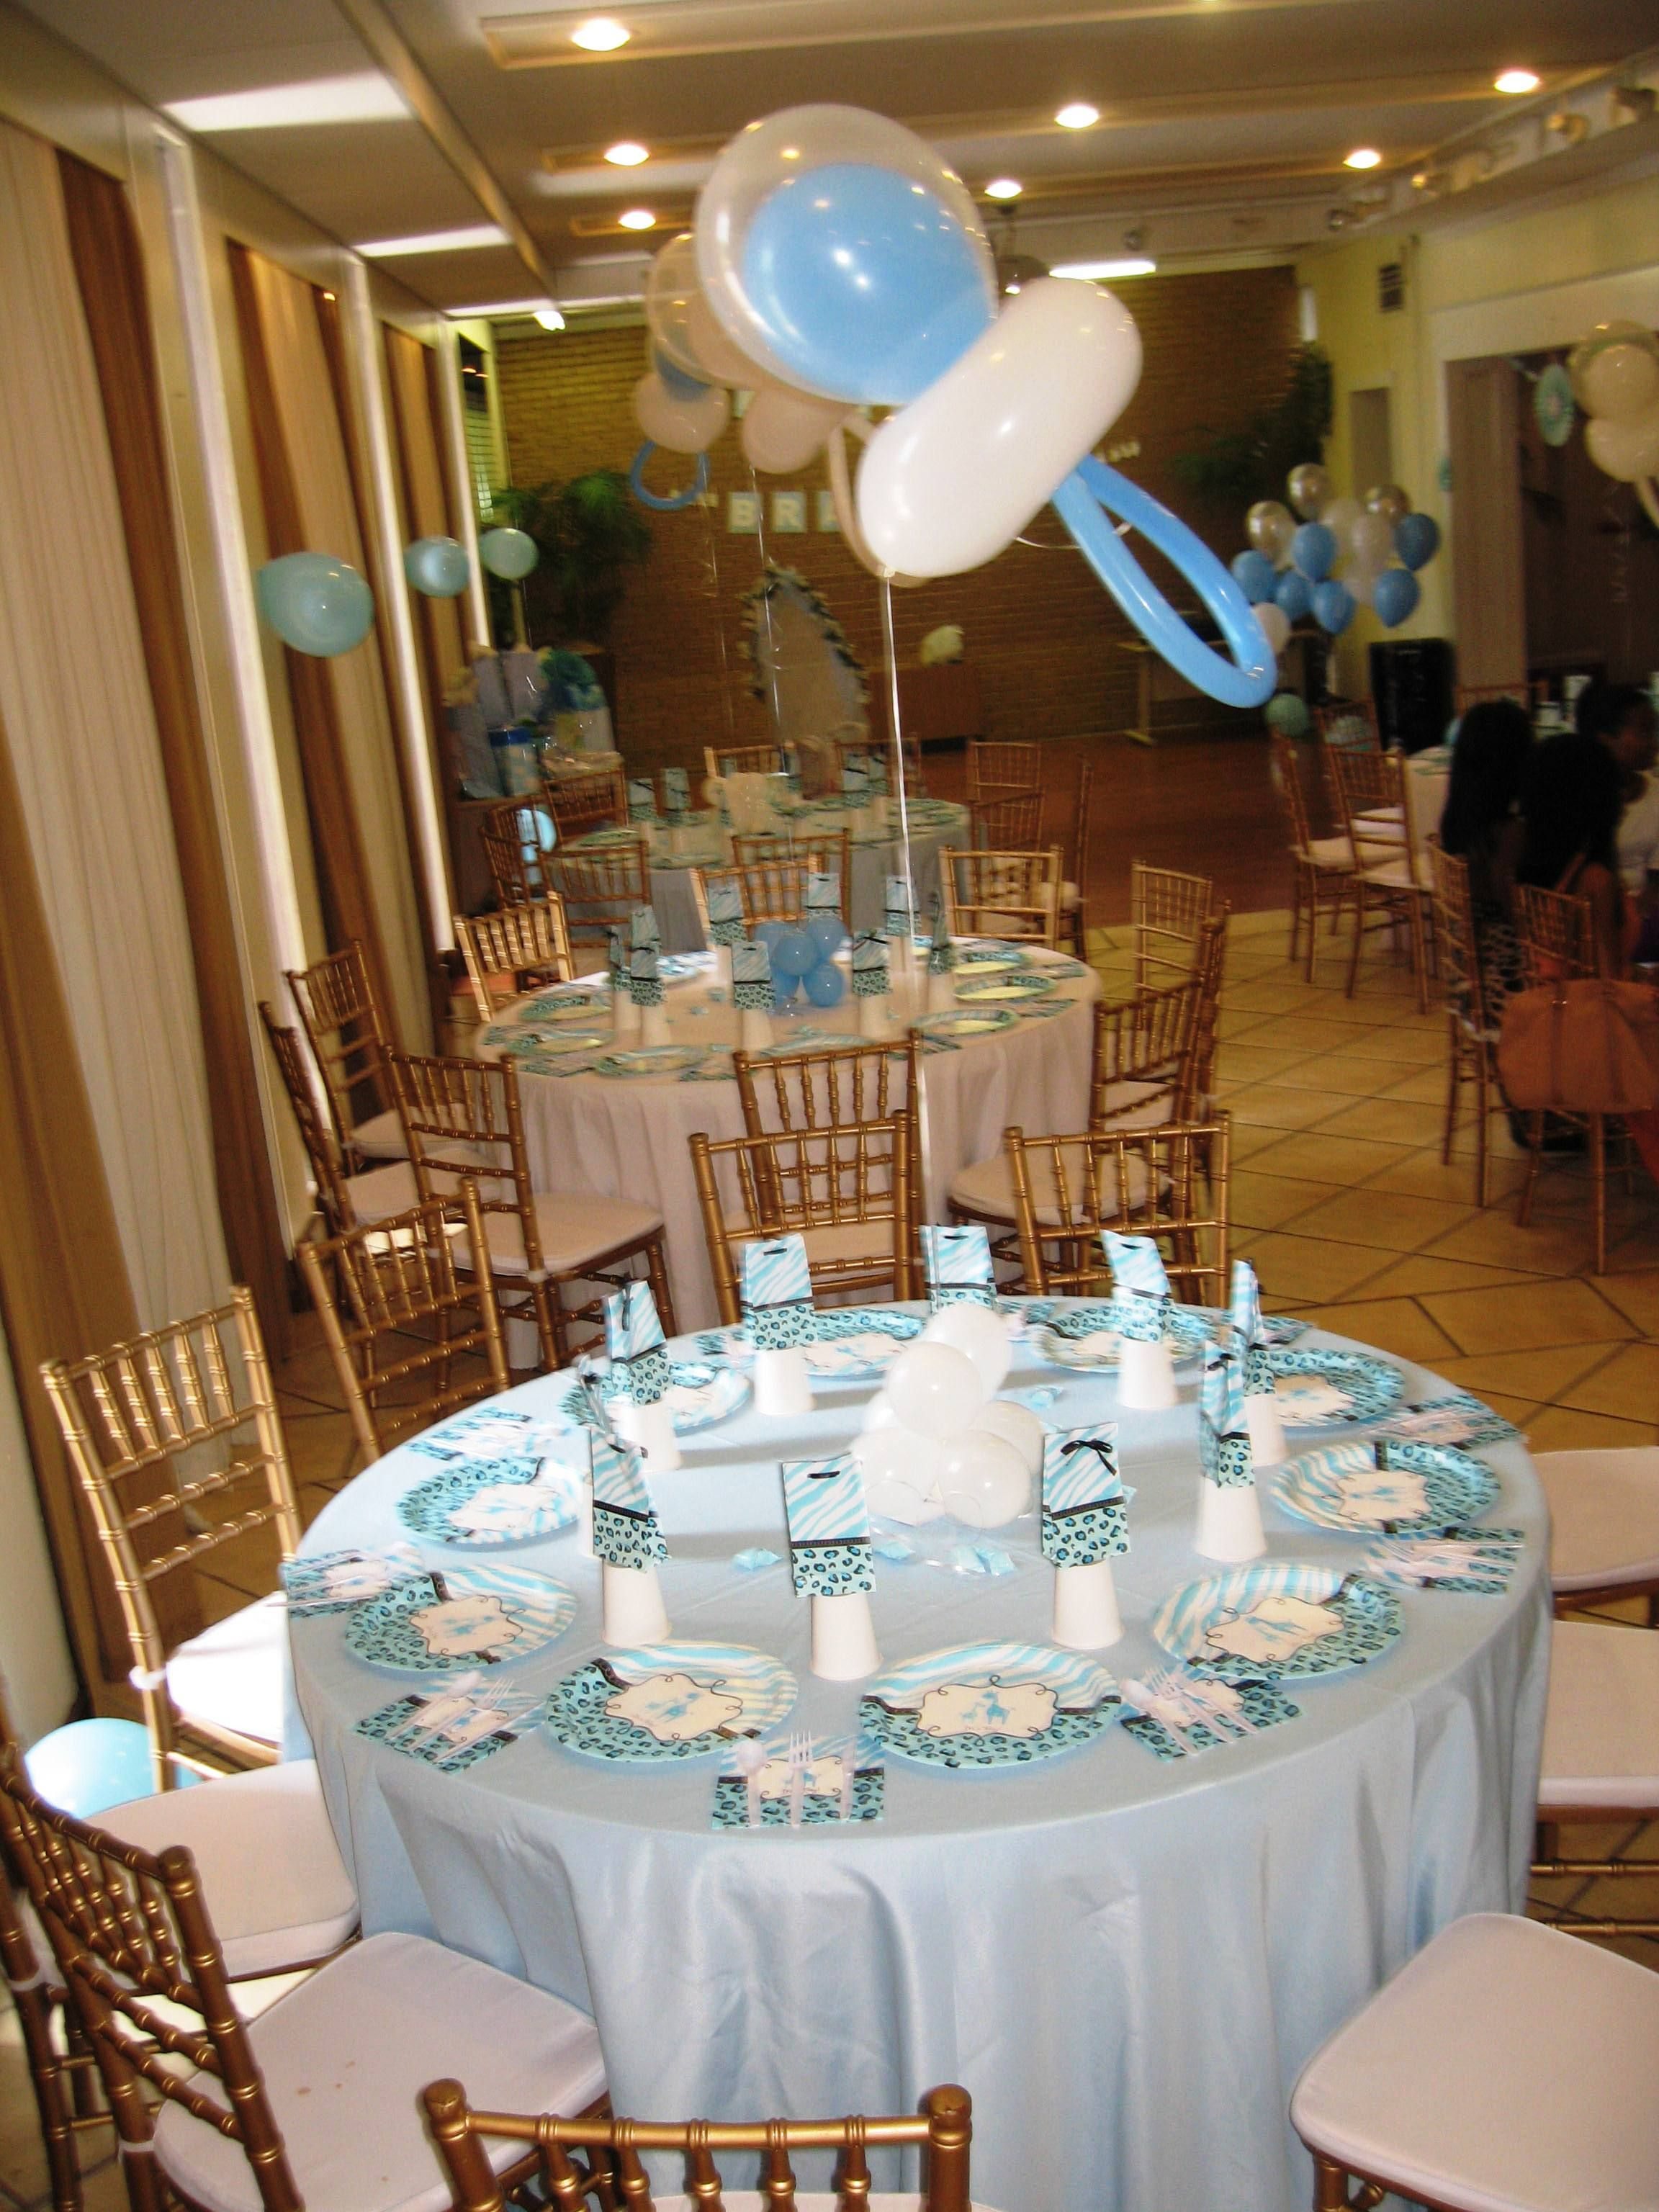 Epic Baby Shower Decor Ideas For Tables - Baby Shower Gallery intended for Baby Shower Table Decorating Ideas